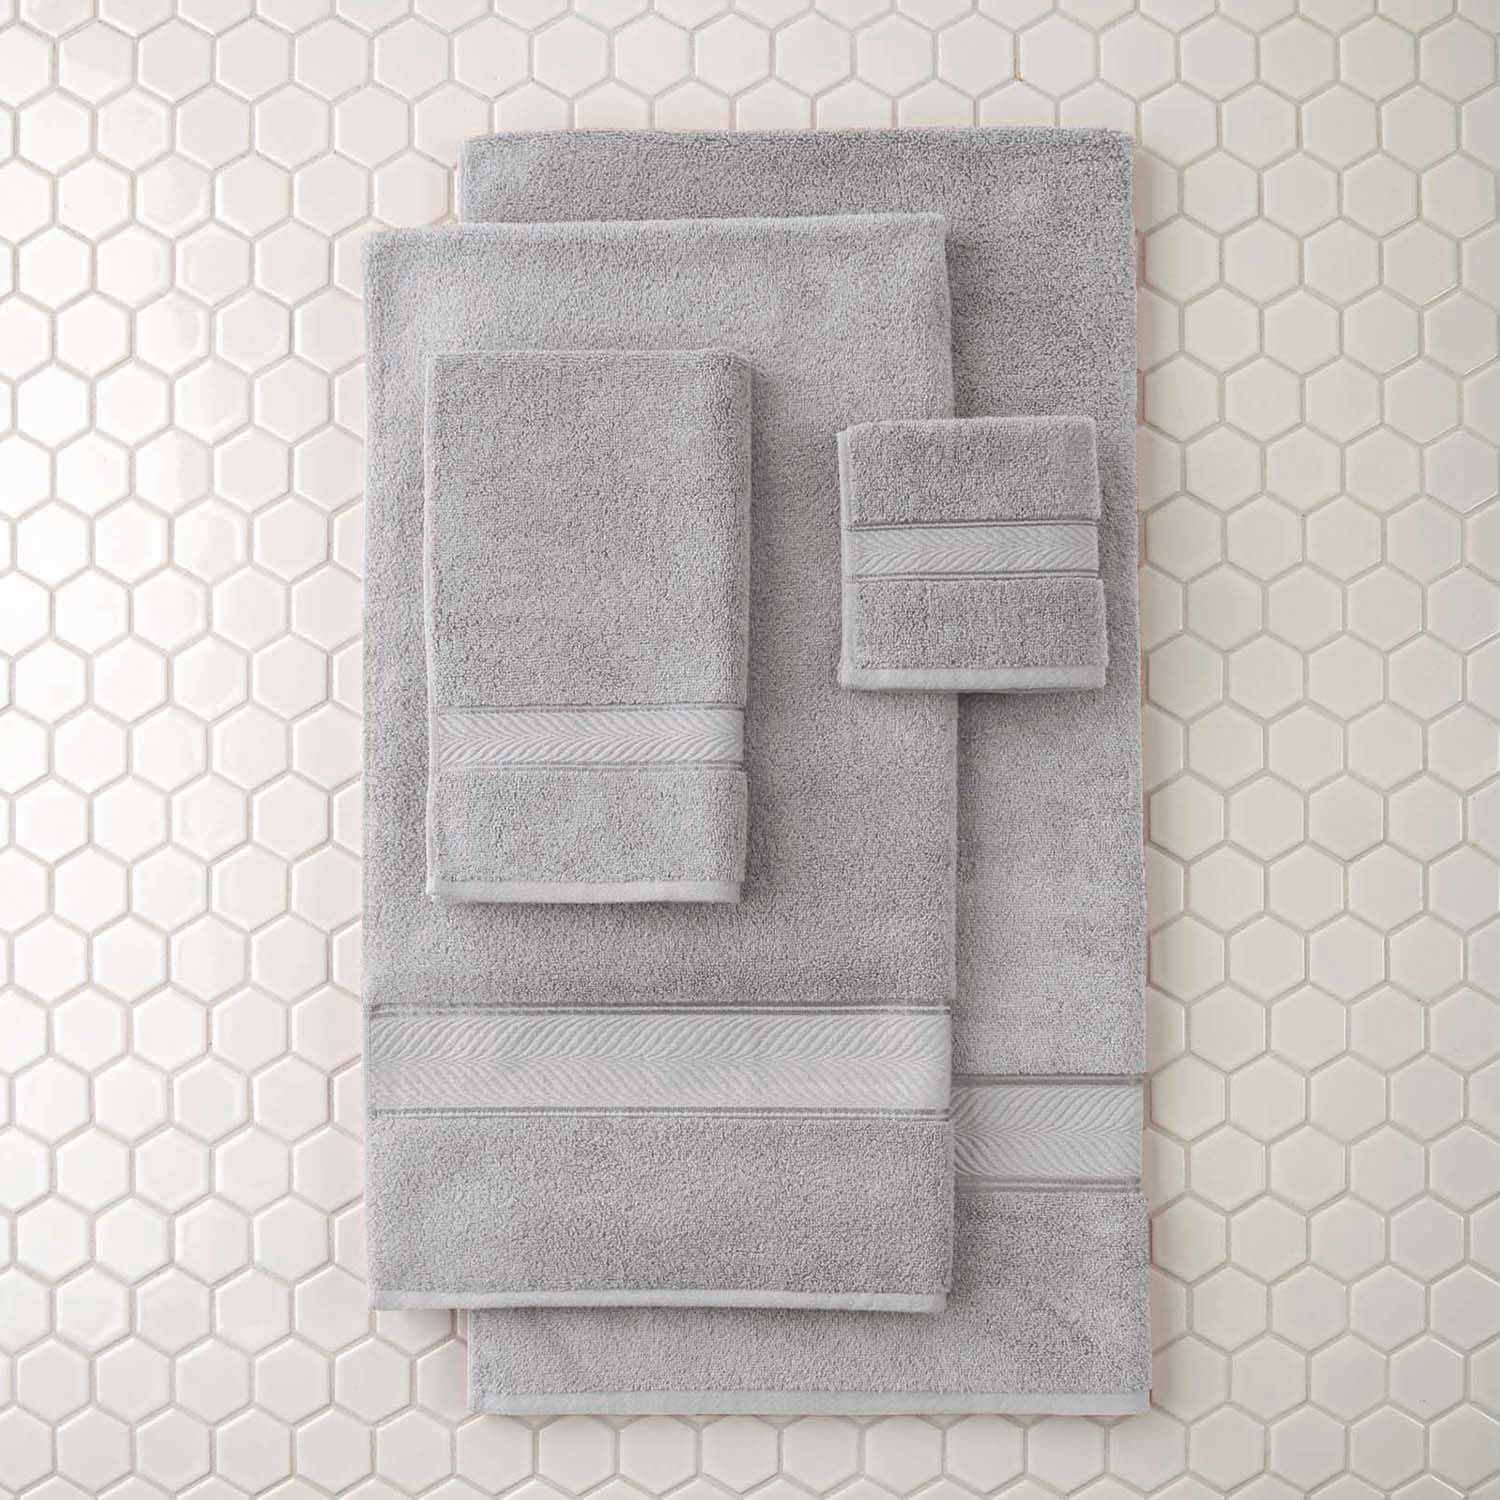 Better Homes and Gardens Thick and Plus Bath Towel Collection